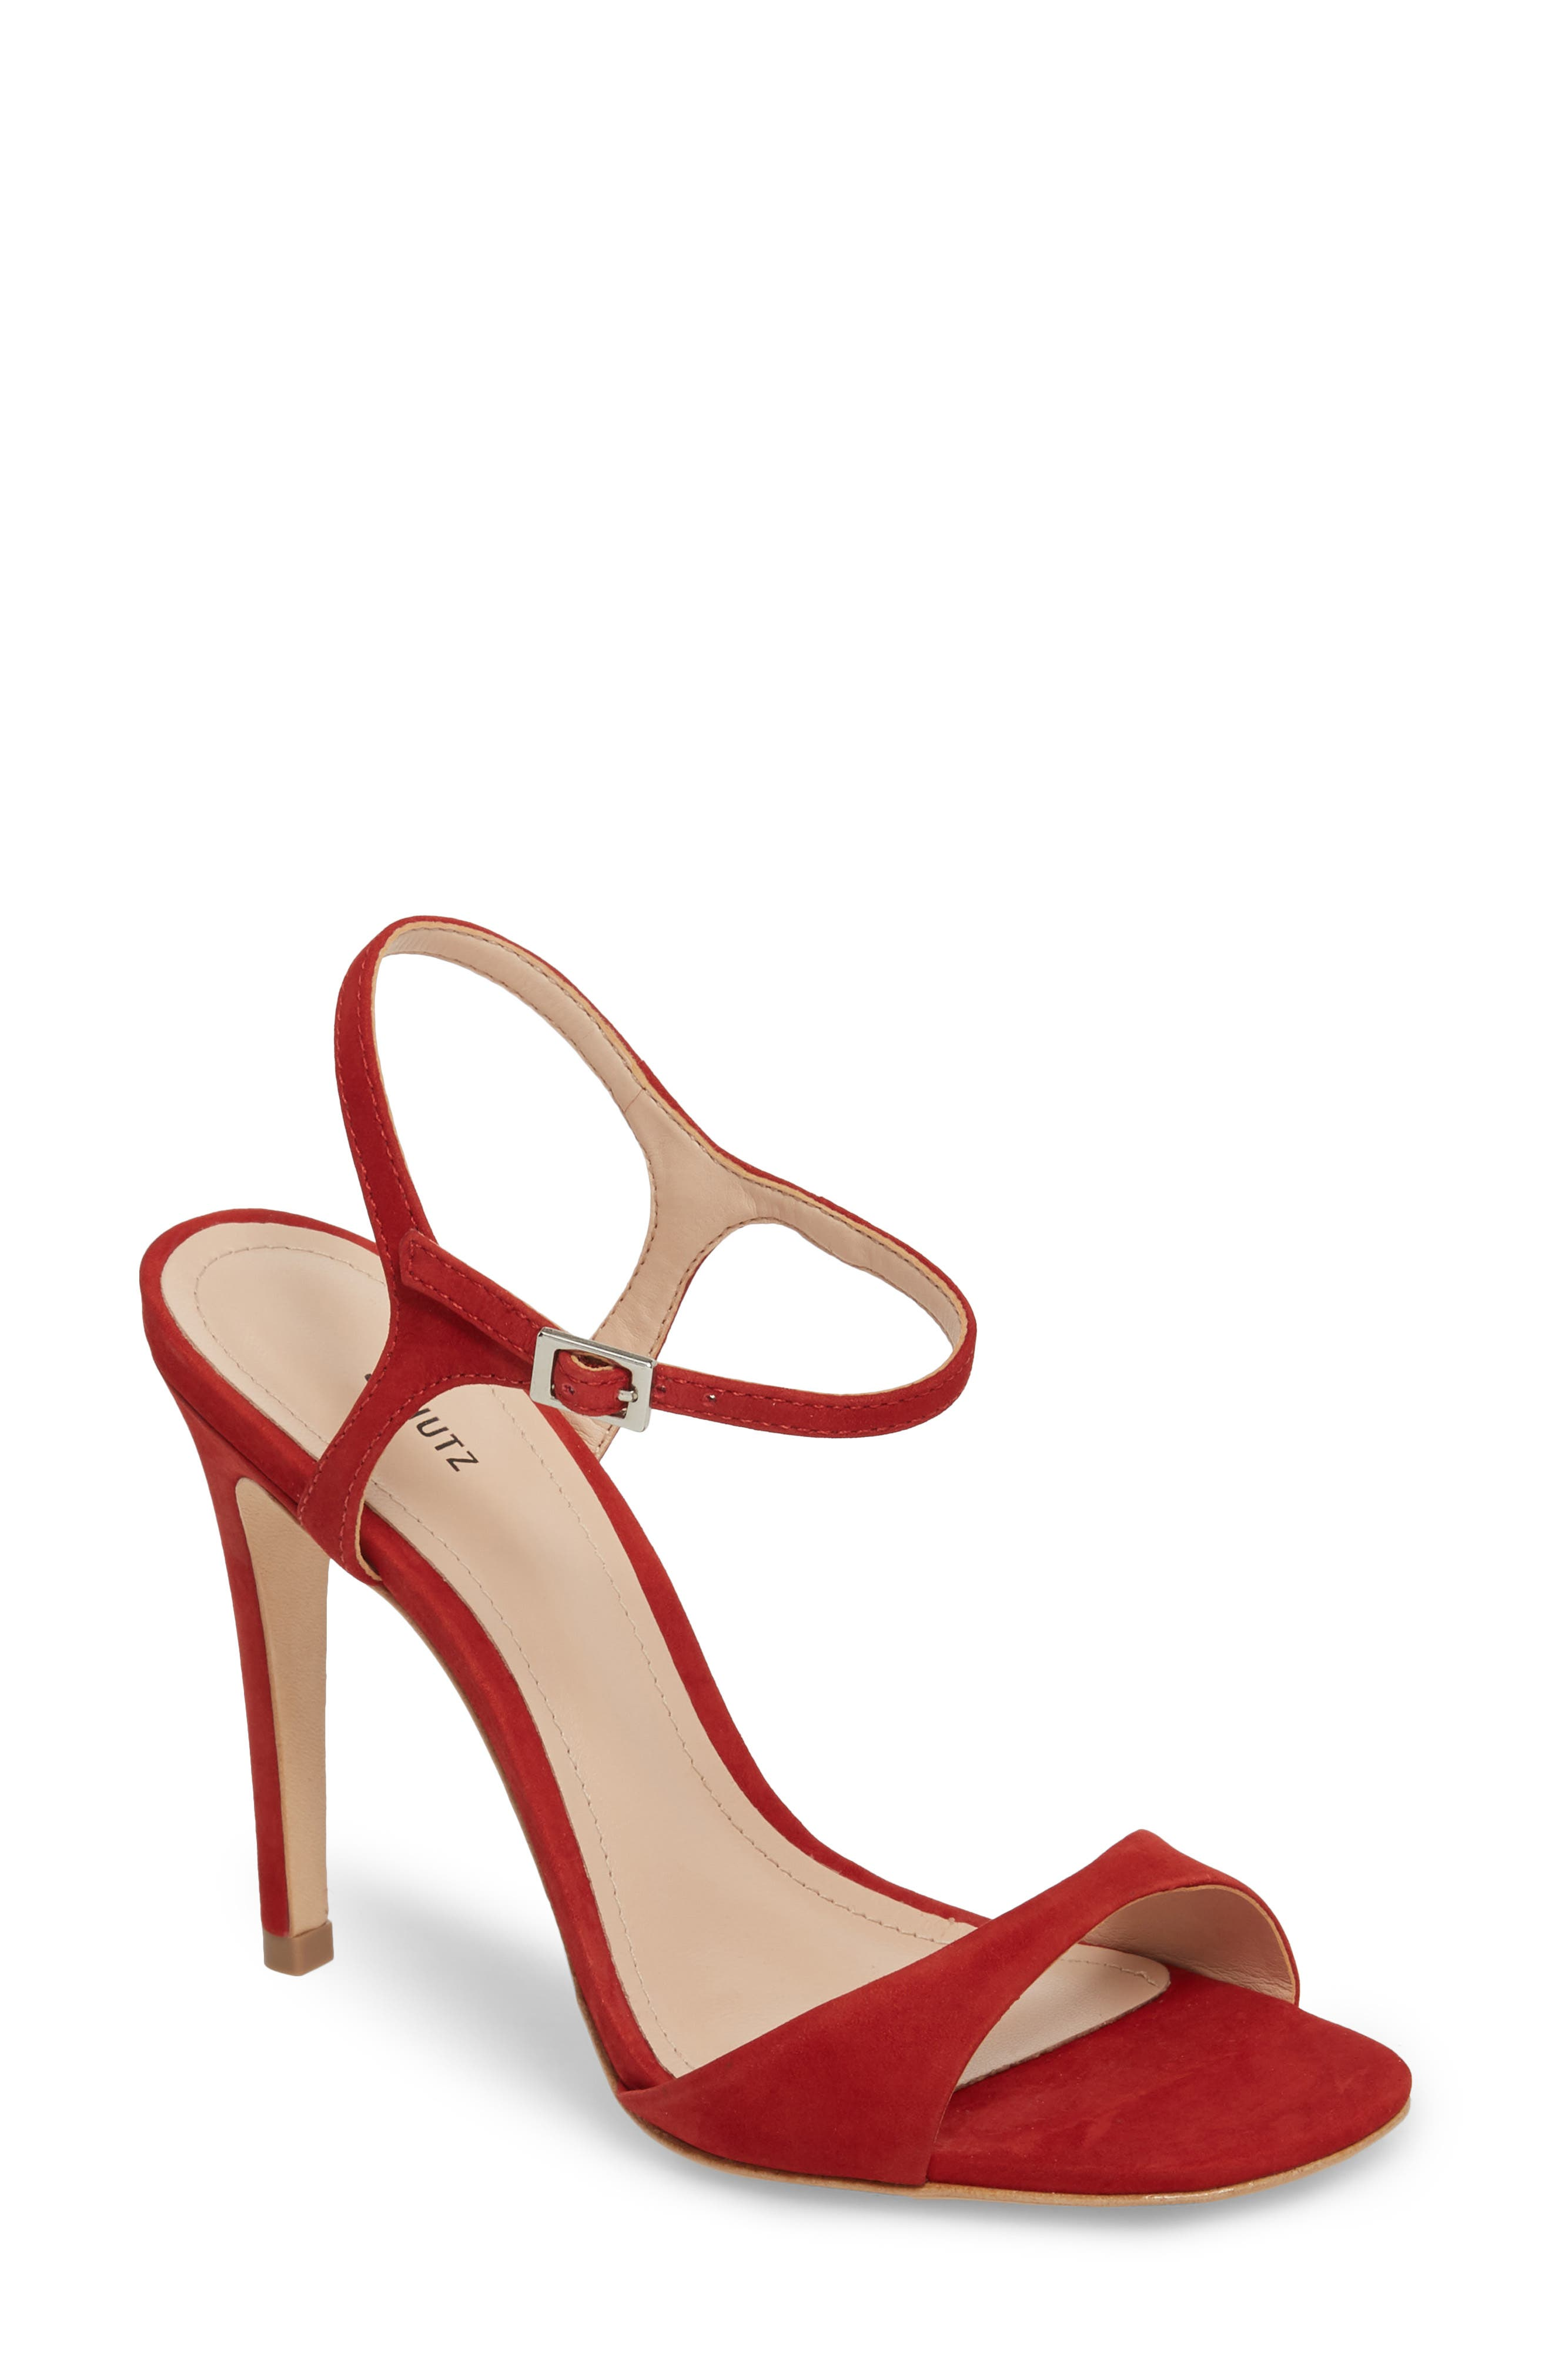 Jade Ankle Strap Sandal,                         Main,                         color, Tango Red